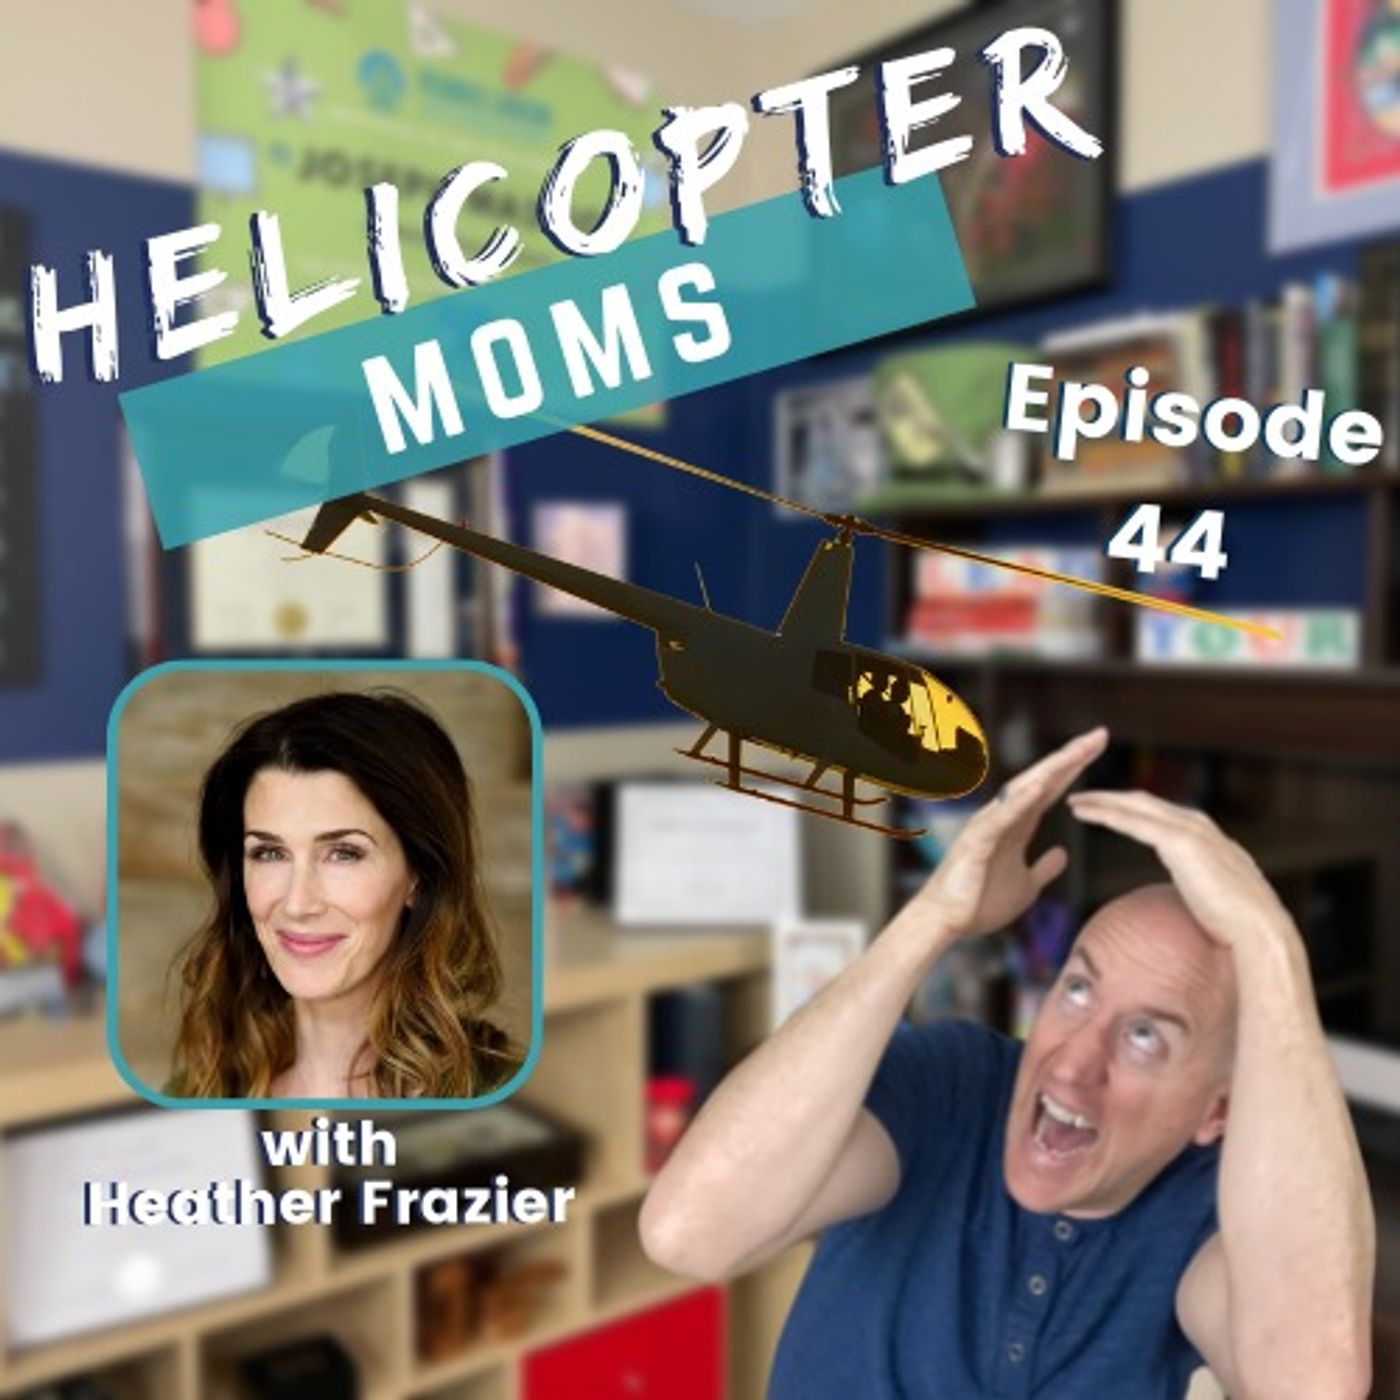 Helicopter Moms